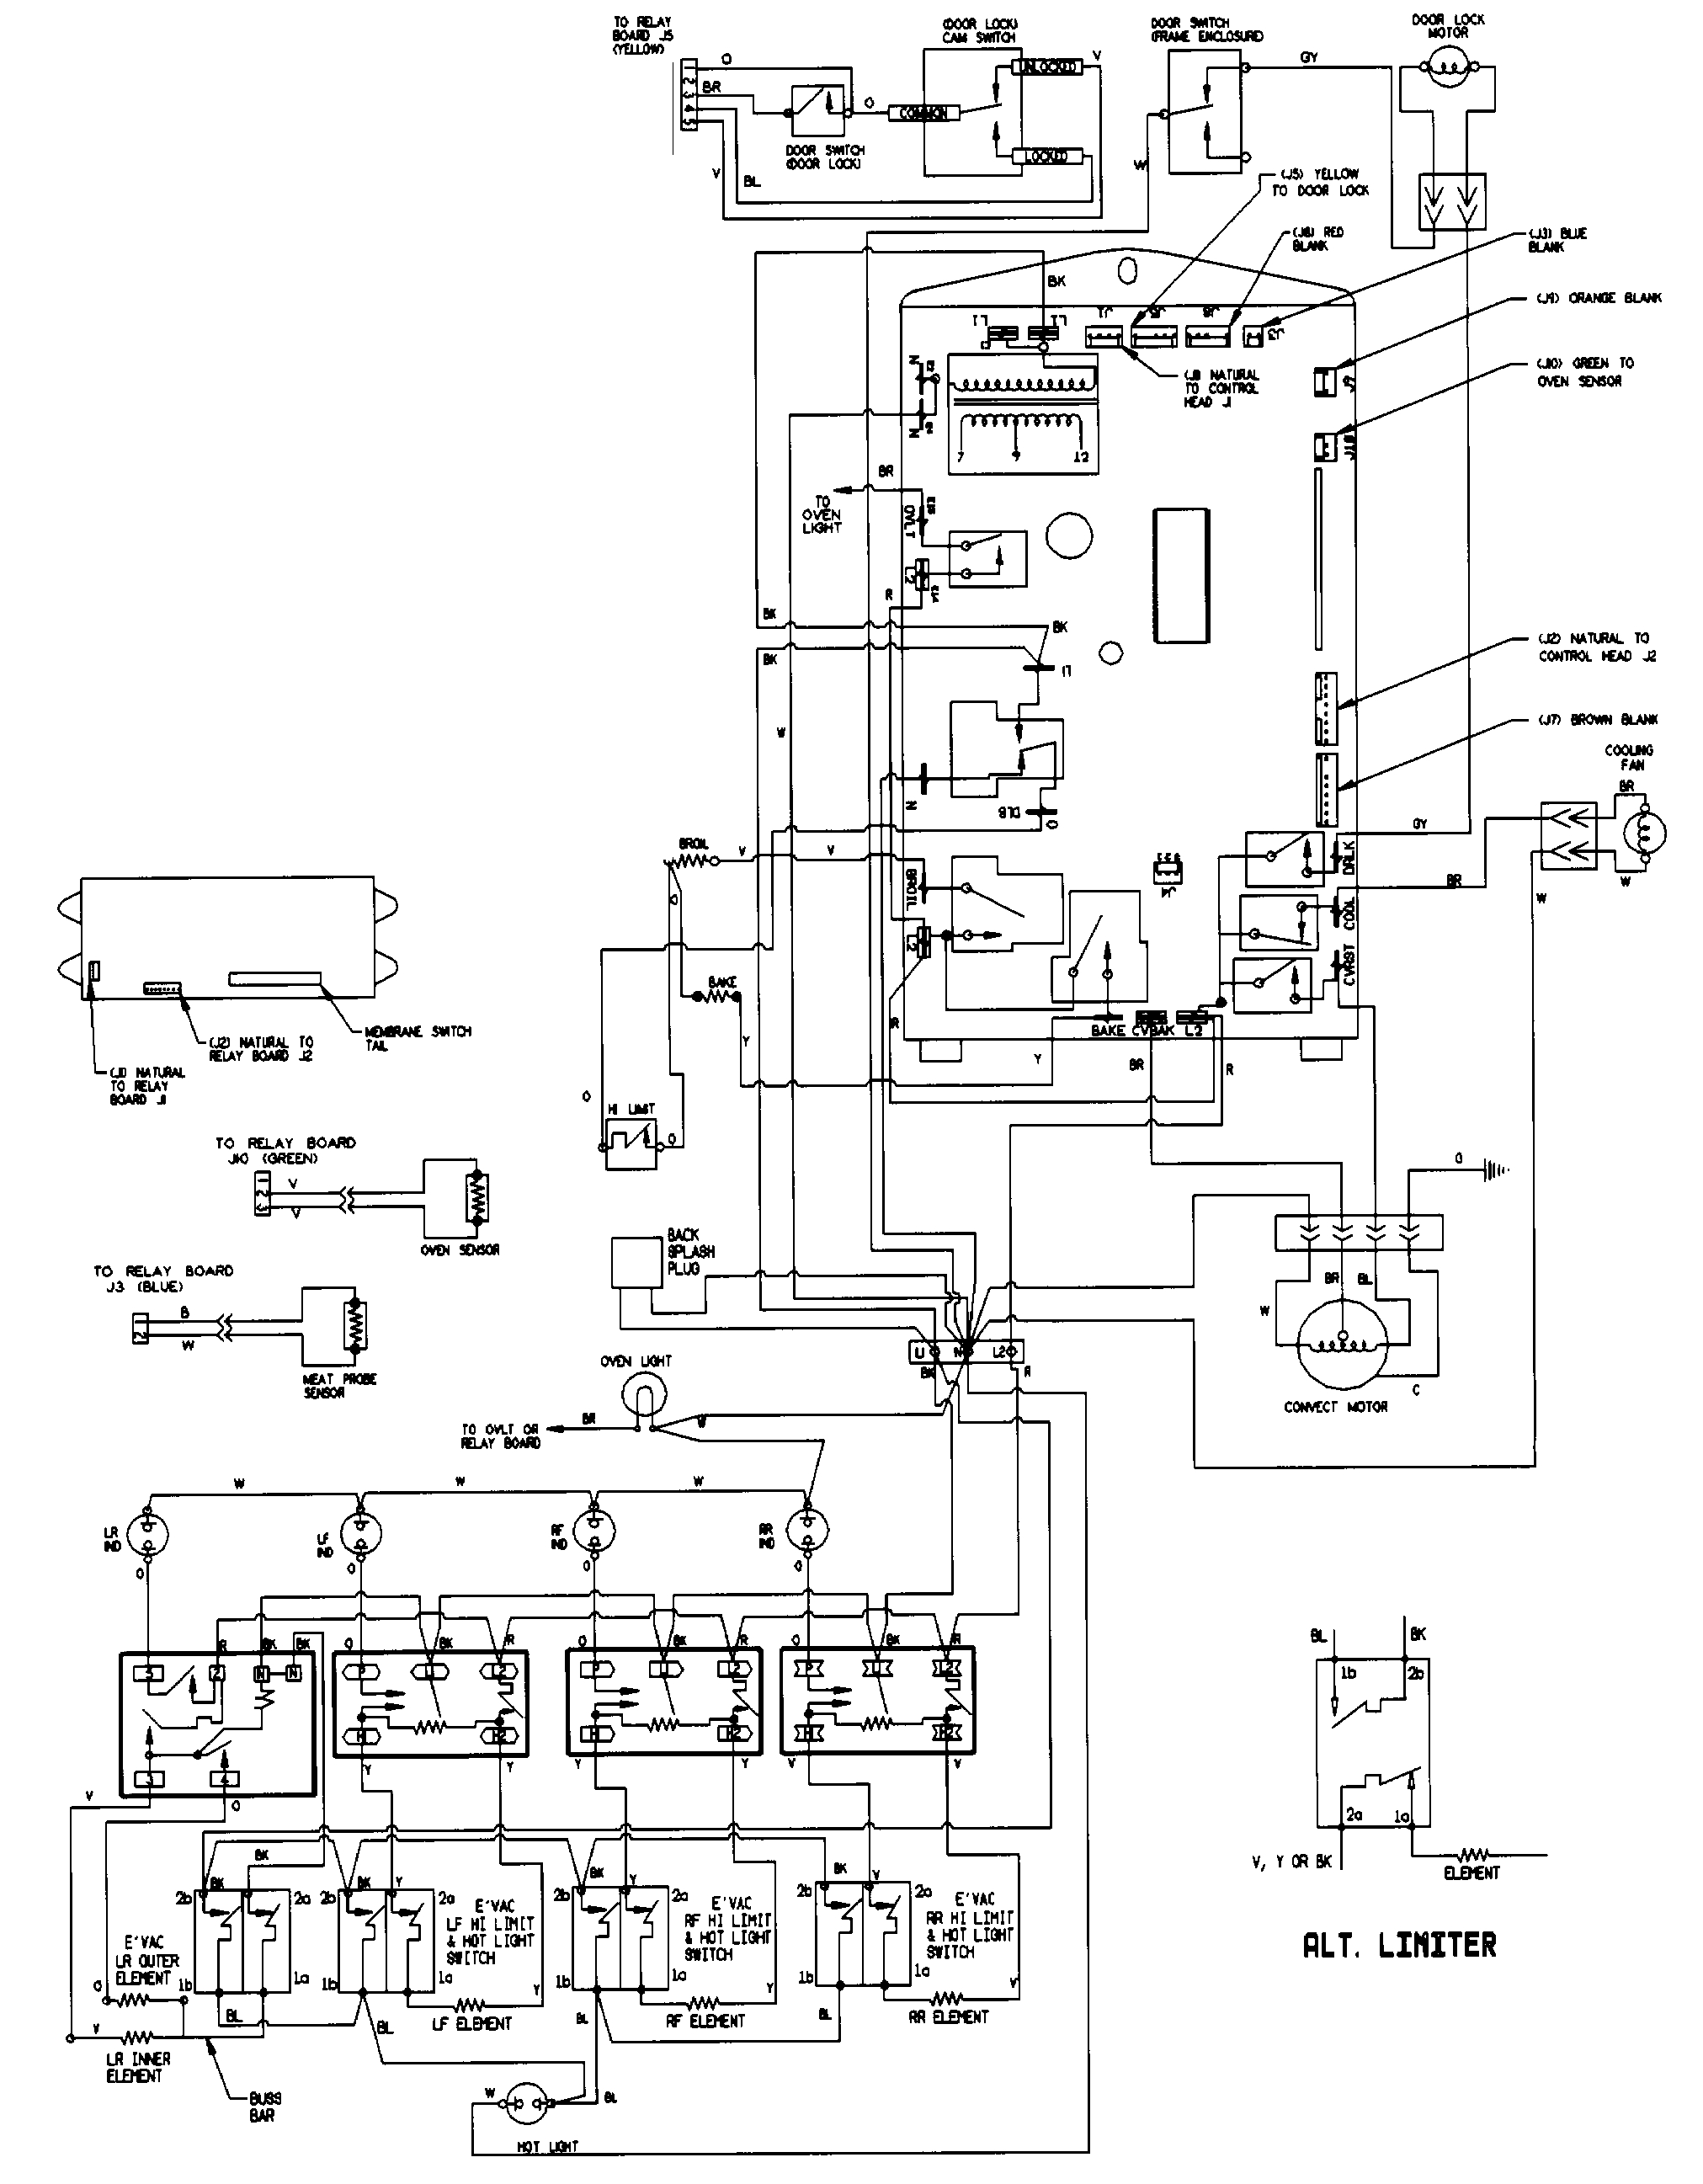 heat surge wiring diagram Collection-Wiring Diagram Whirlpool Refrigerator New And 19-f